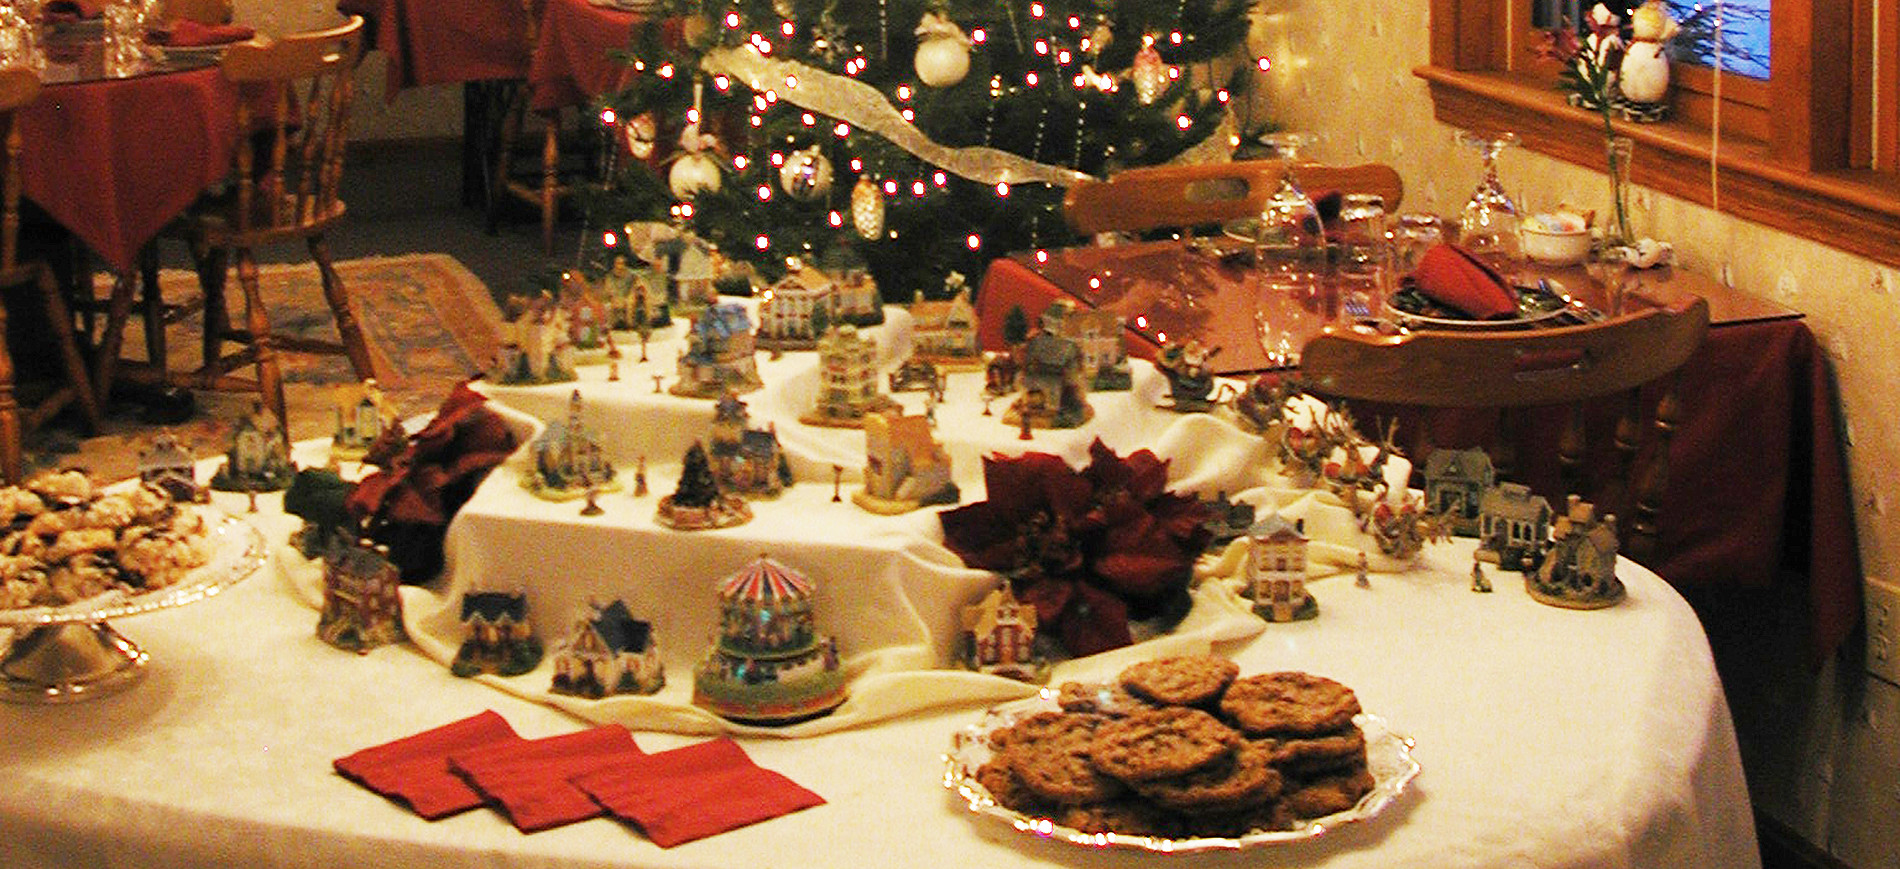 Cookie Tour display with miniature village